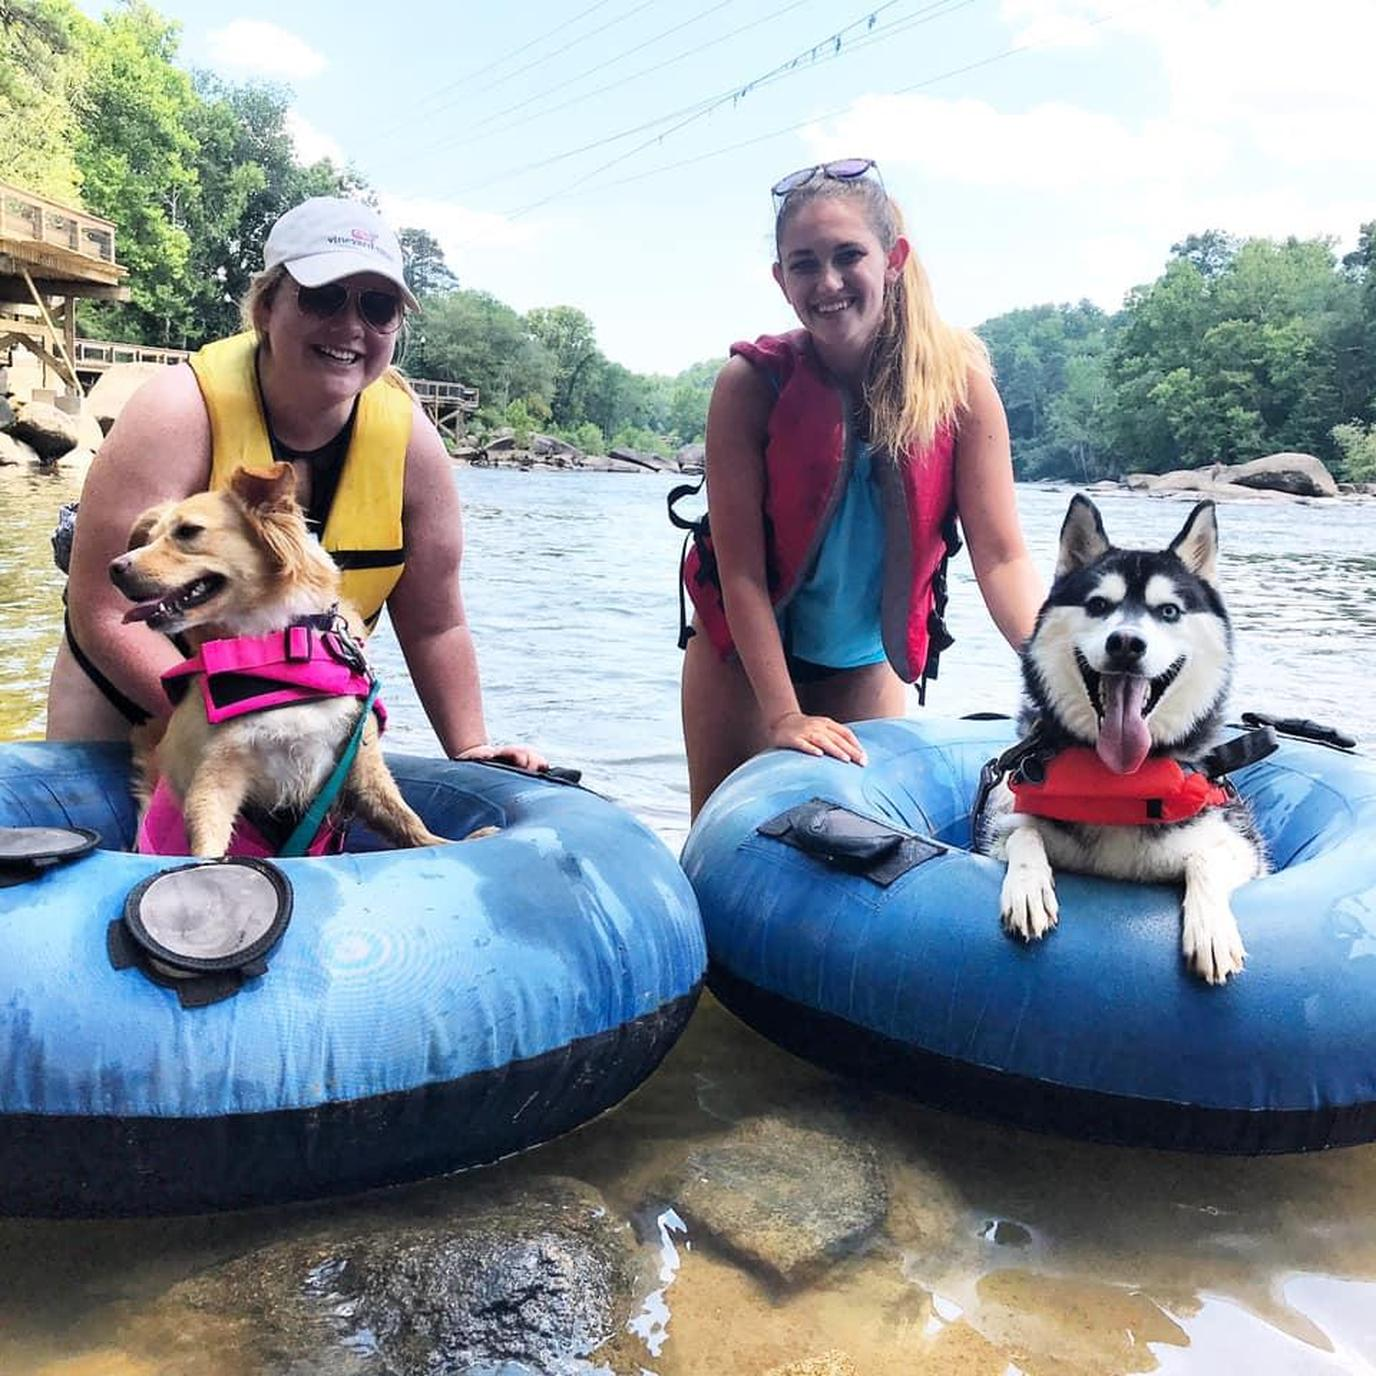 Go pet-friendly tubing on the Congaree River in Columbia with Palmetto Outdoors.